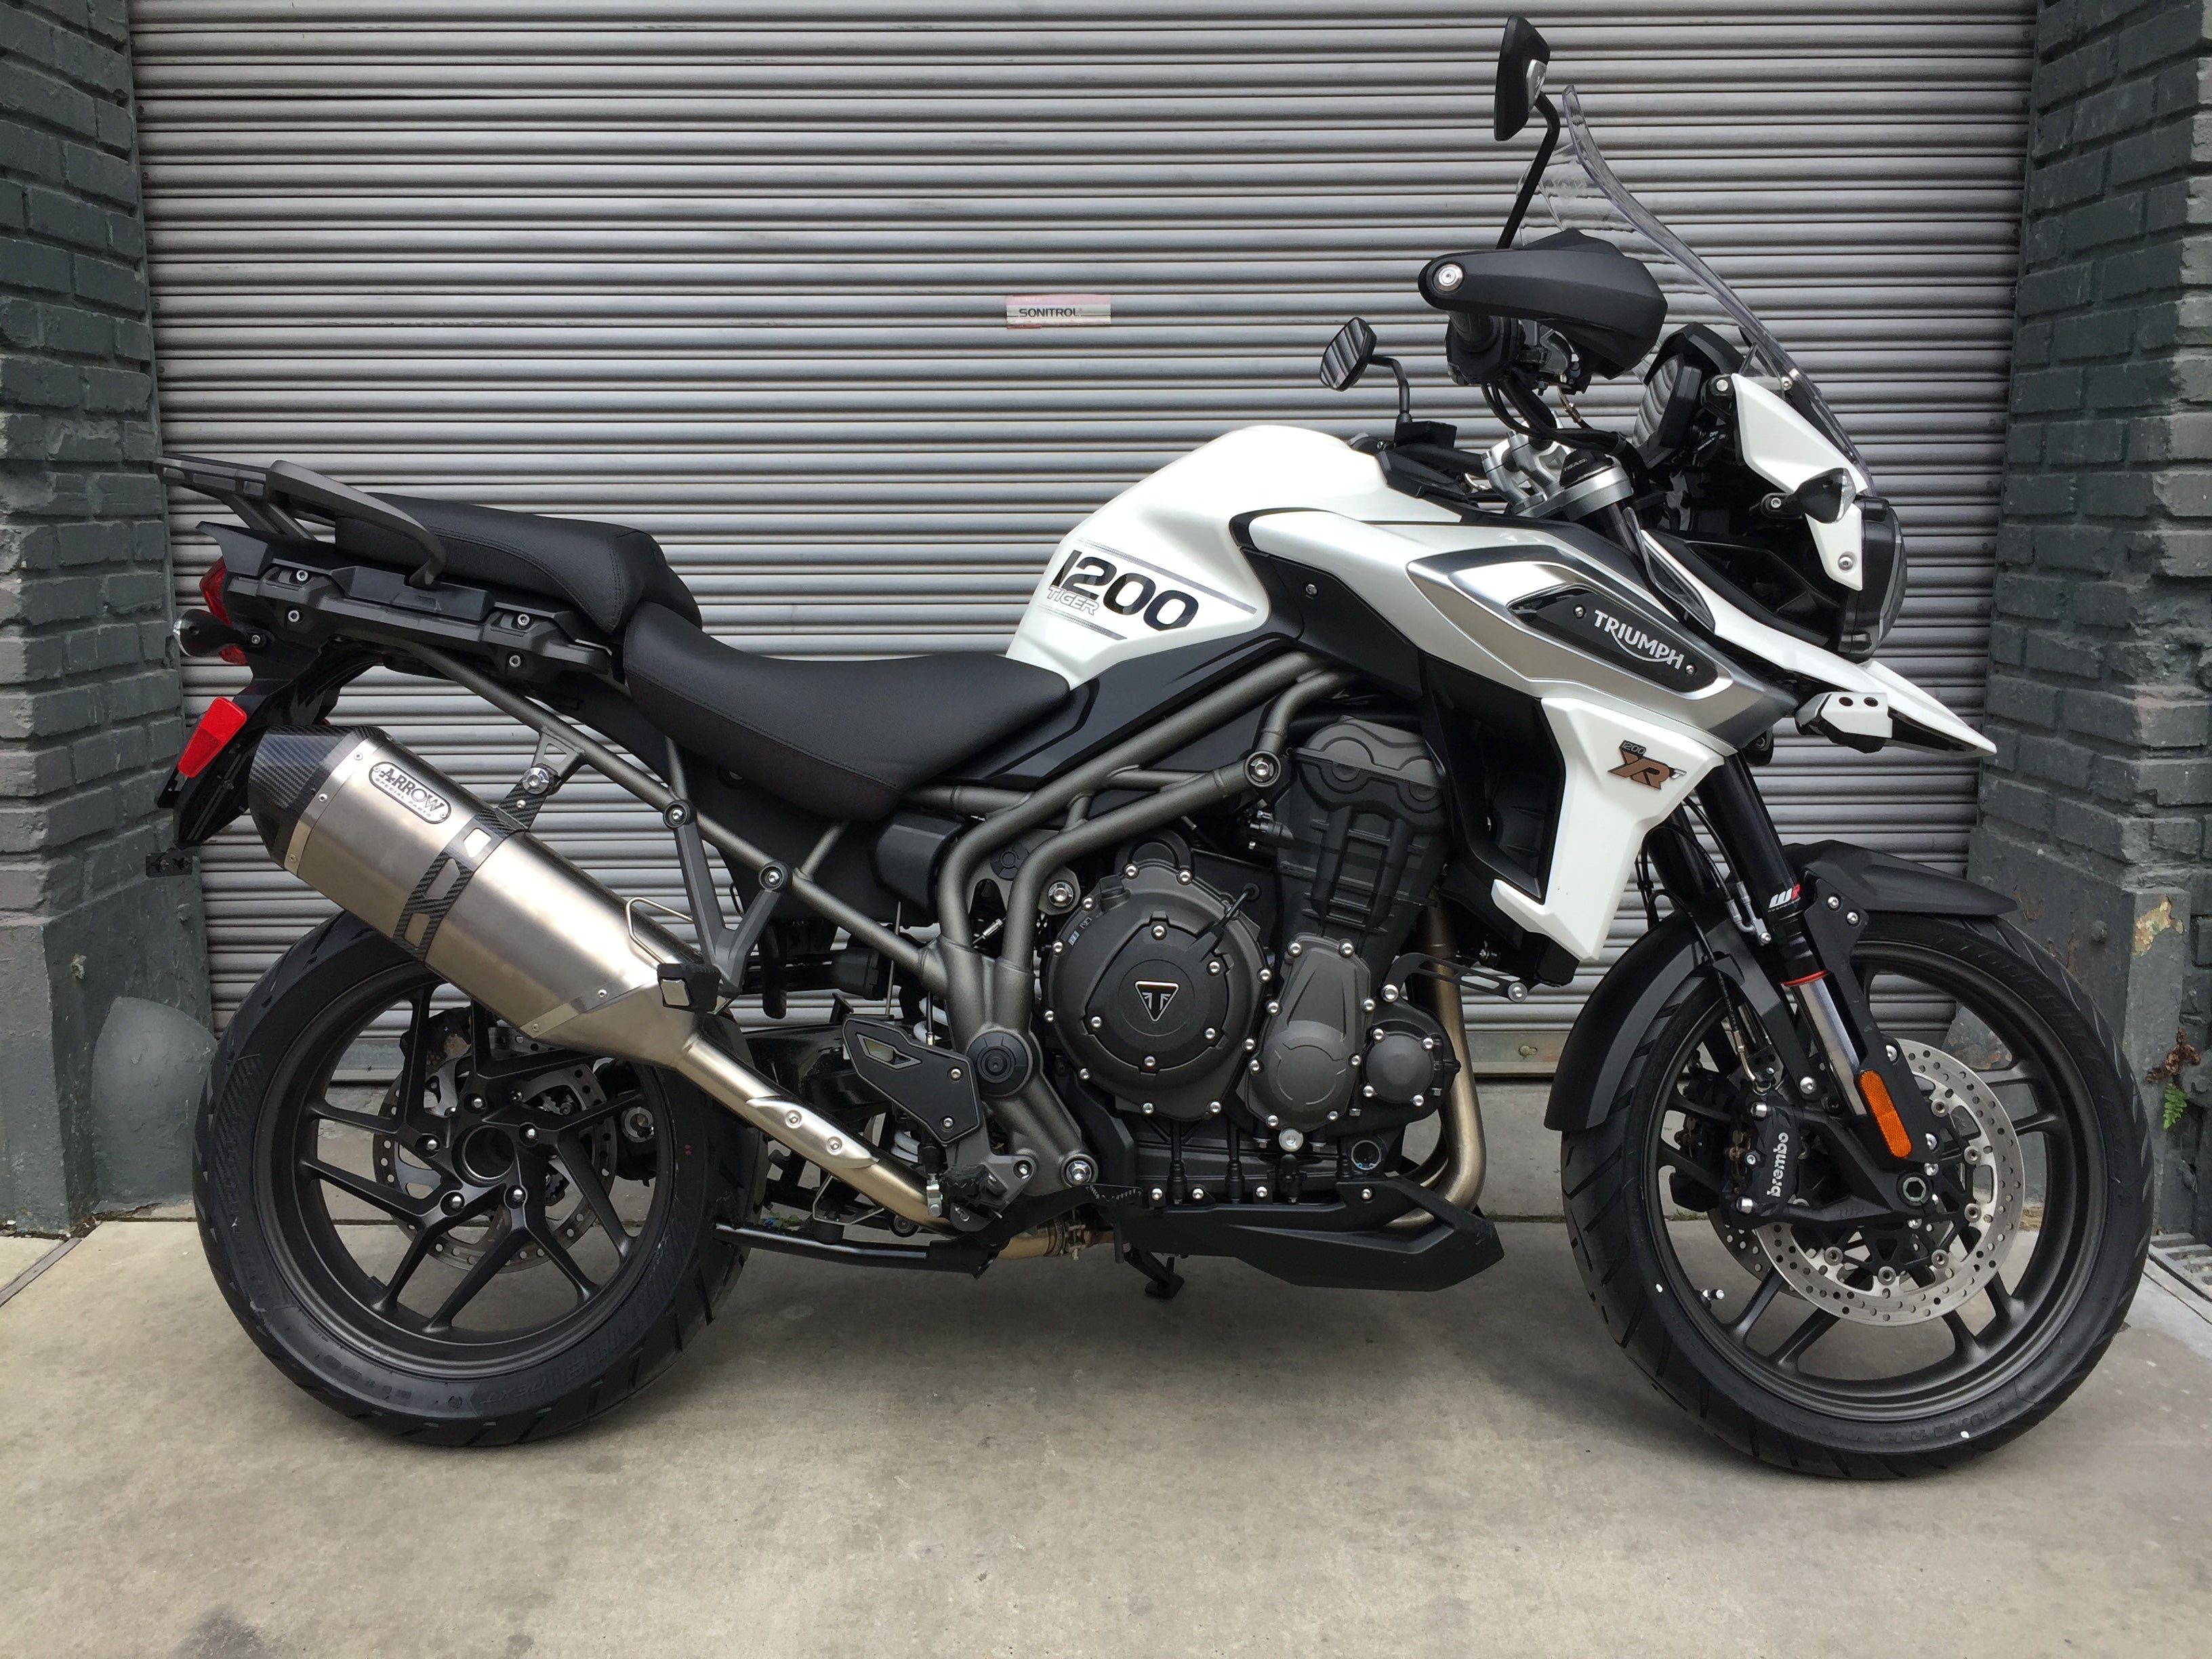 Bmw Pre Owned >> 2018 Triumph Tiger 1200 XRt - Crystal White – The Transportation Revolution New Orleans - TTRNO